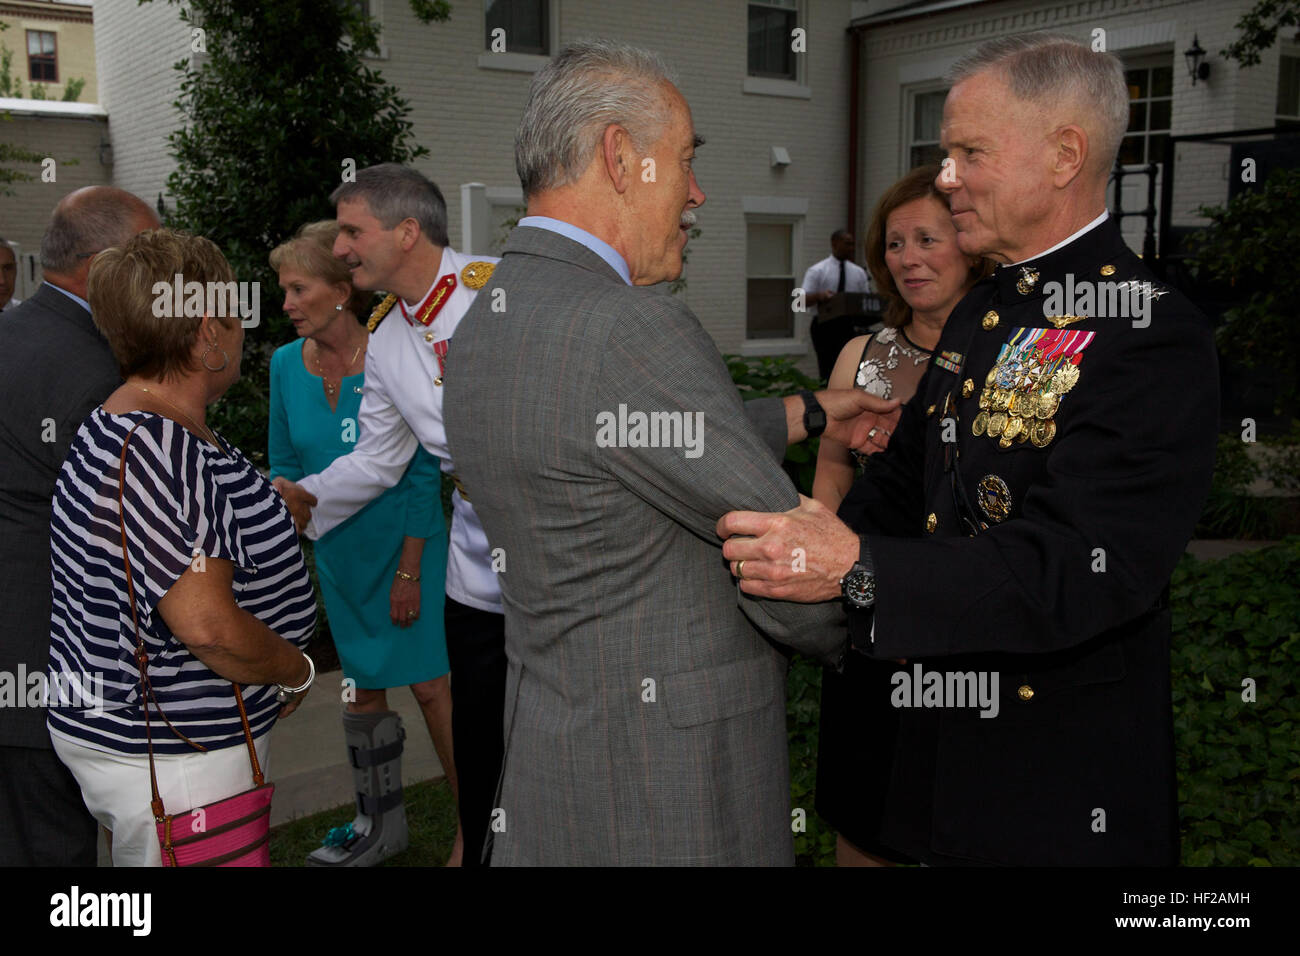 The Commandant of the U.S. Marine Corps, Gen. James F. Amos, right, greets a guest during an Evening Parade reception Stock Photo